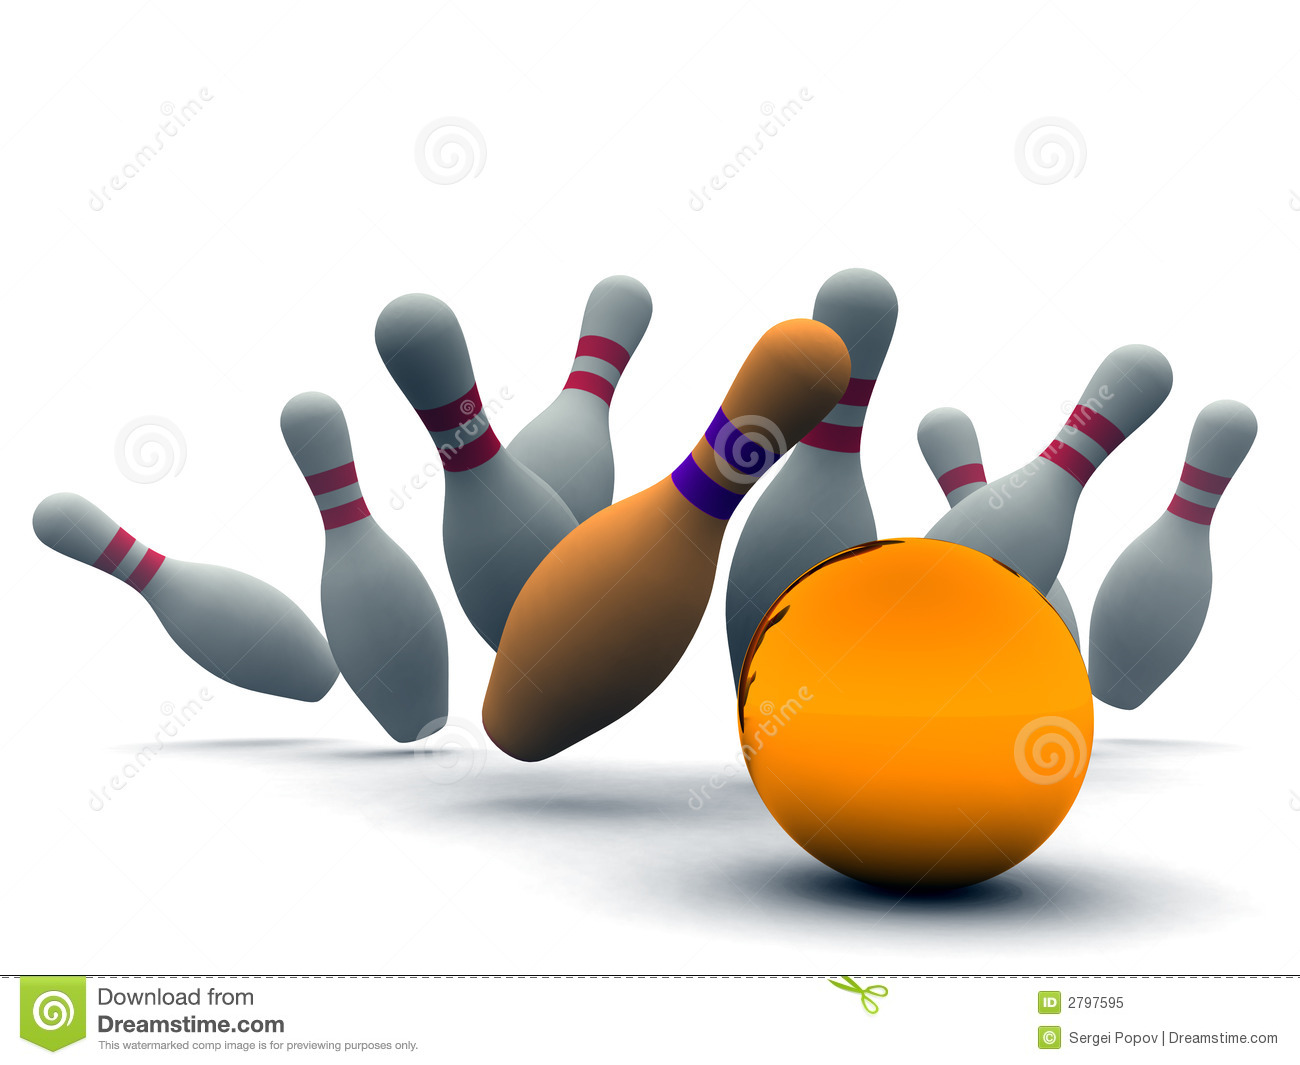 Orange ball for bowling breaking line-up of bowling pins on a white ...